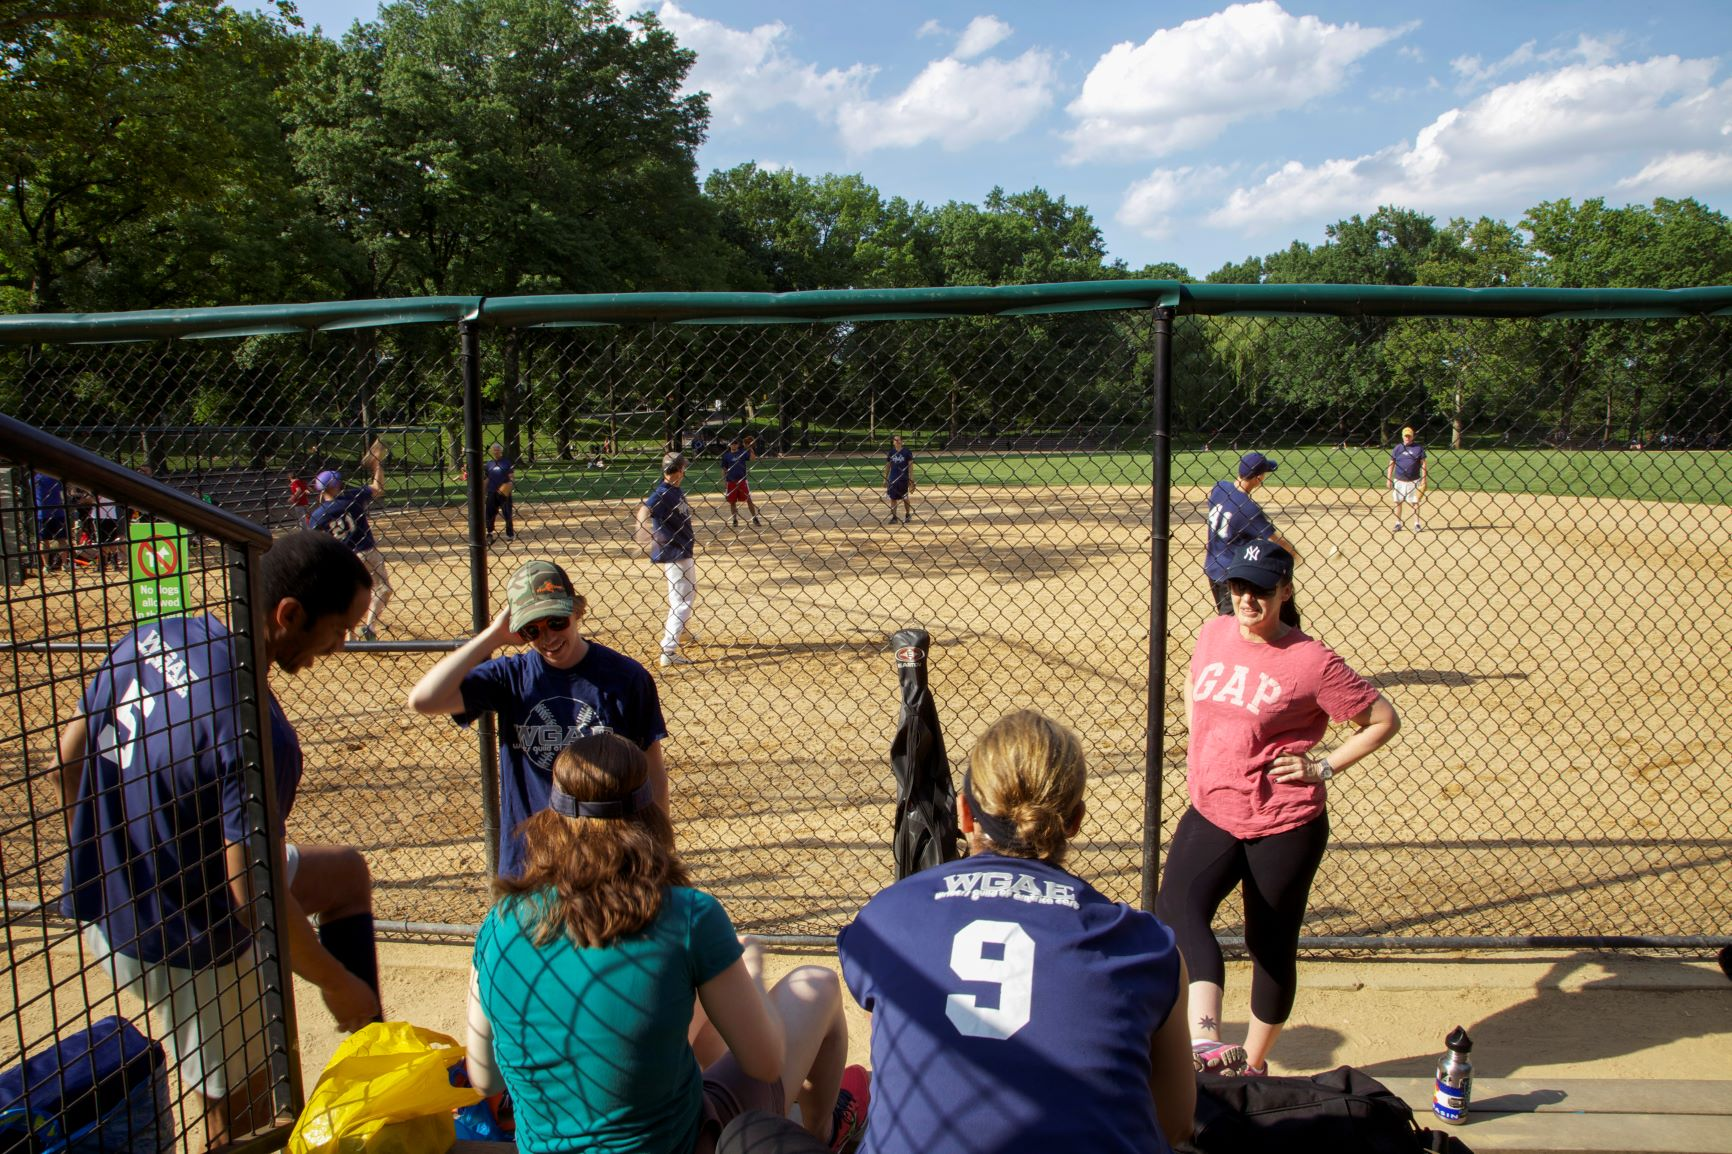 A photo of the past years' WGA East softball team at a game.